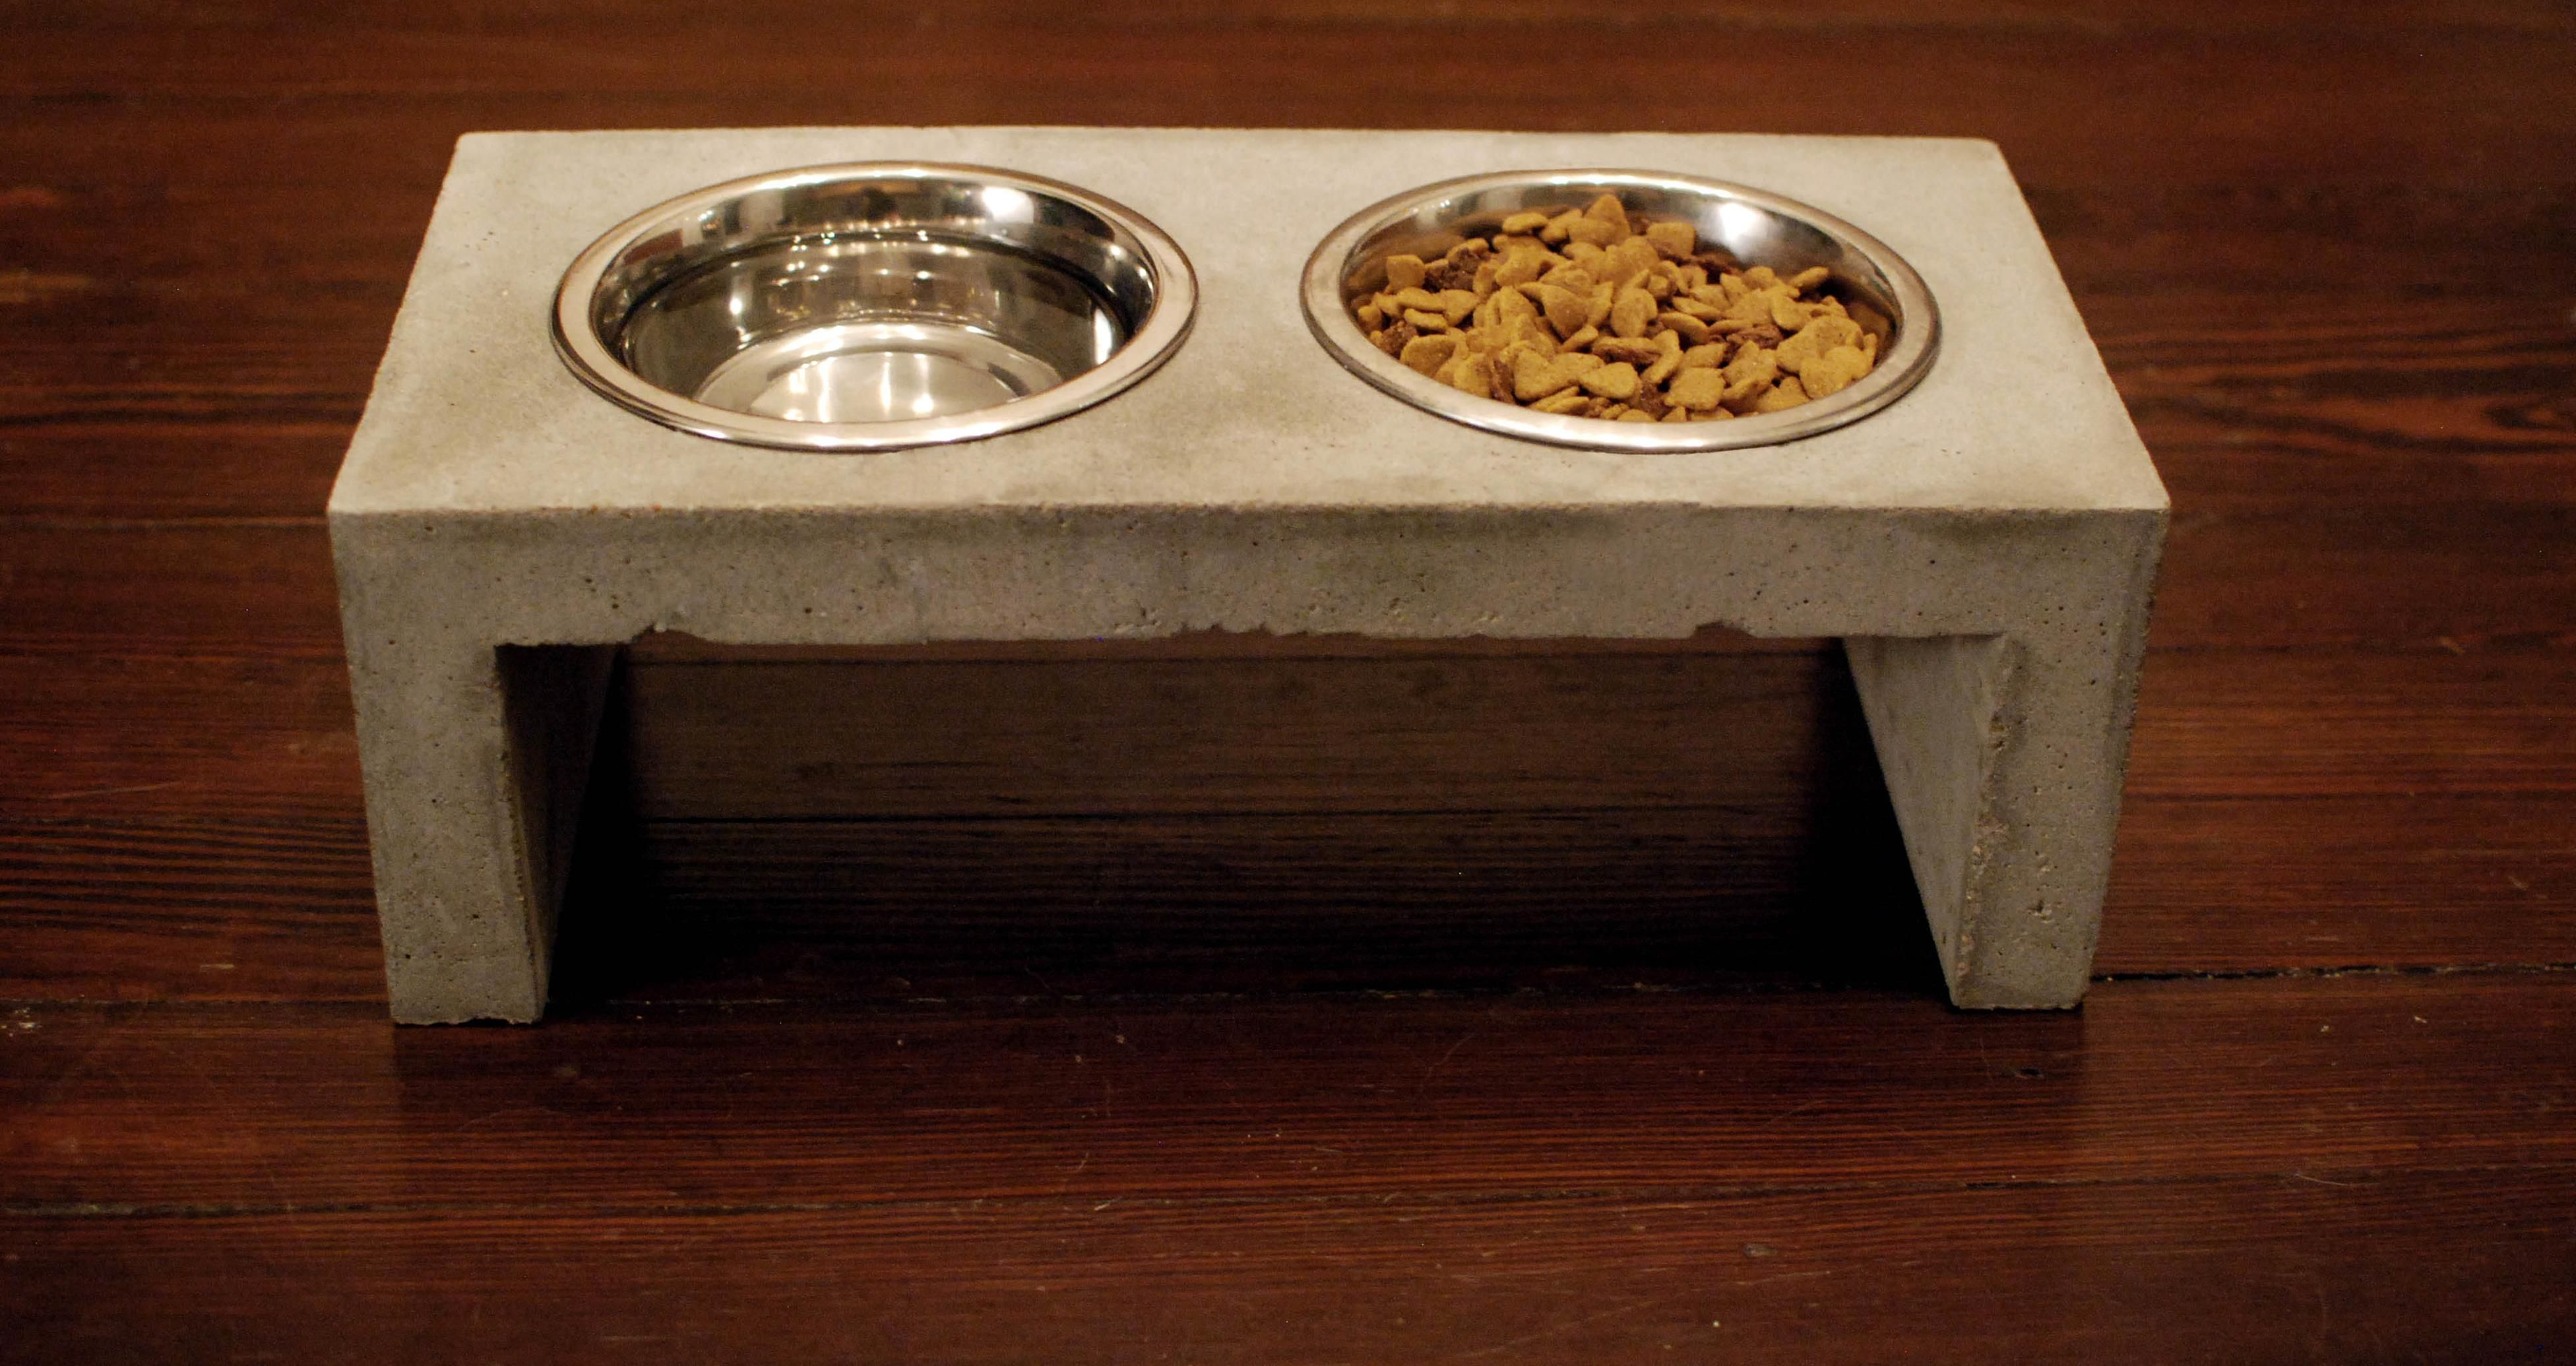 Buy Quikrete Countertop Mix Standing Dog Bowl Quotthe Objective Of This Project Was To